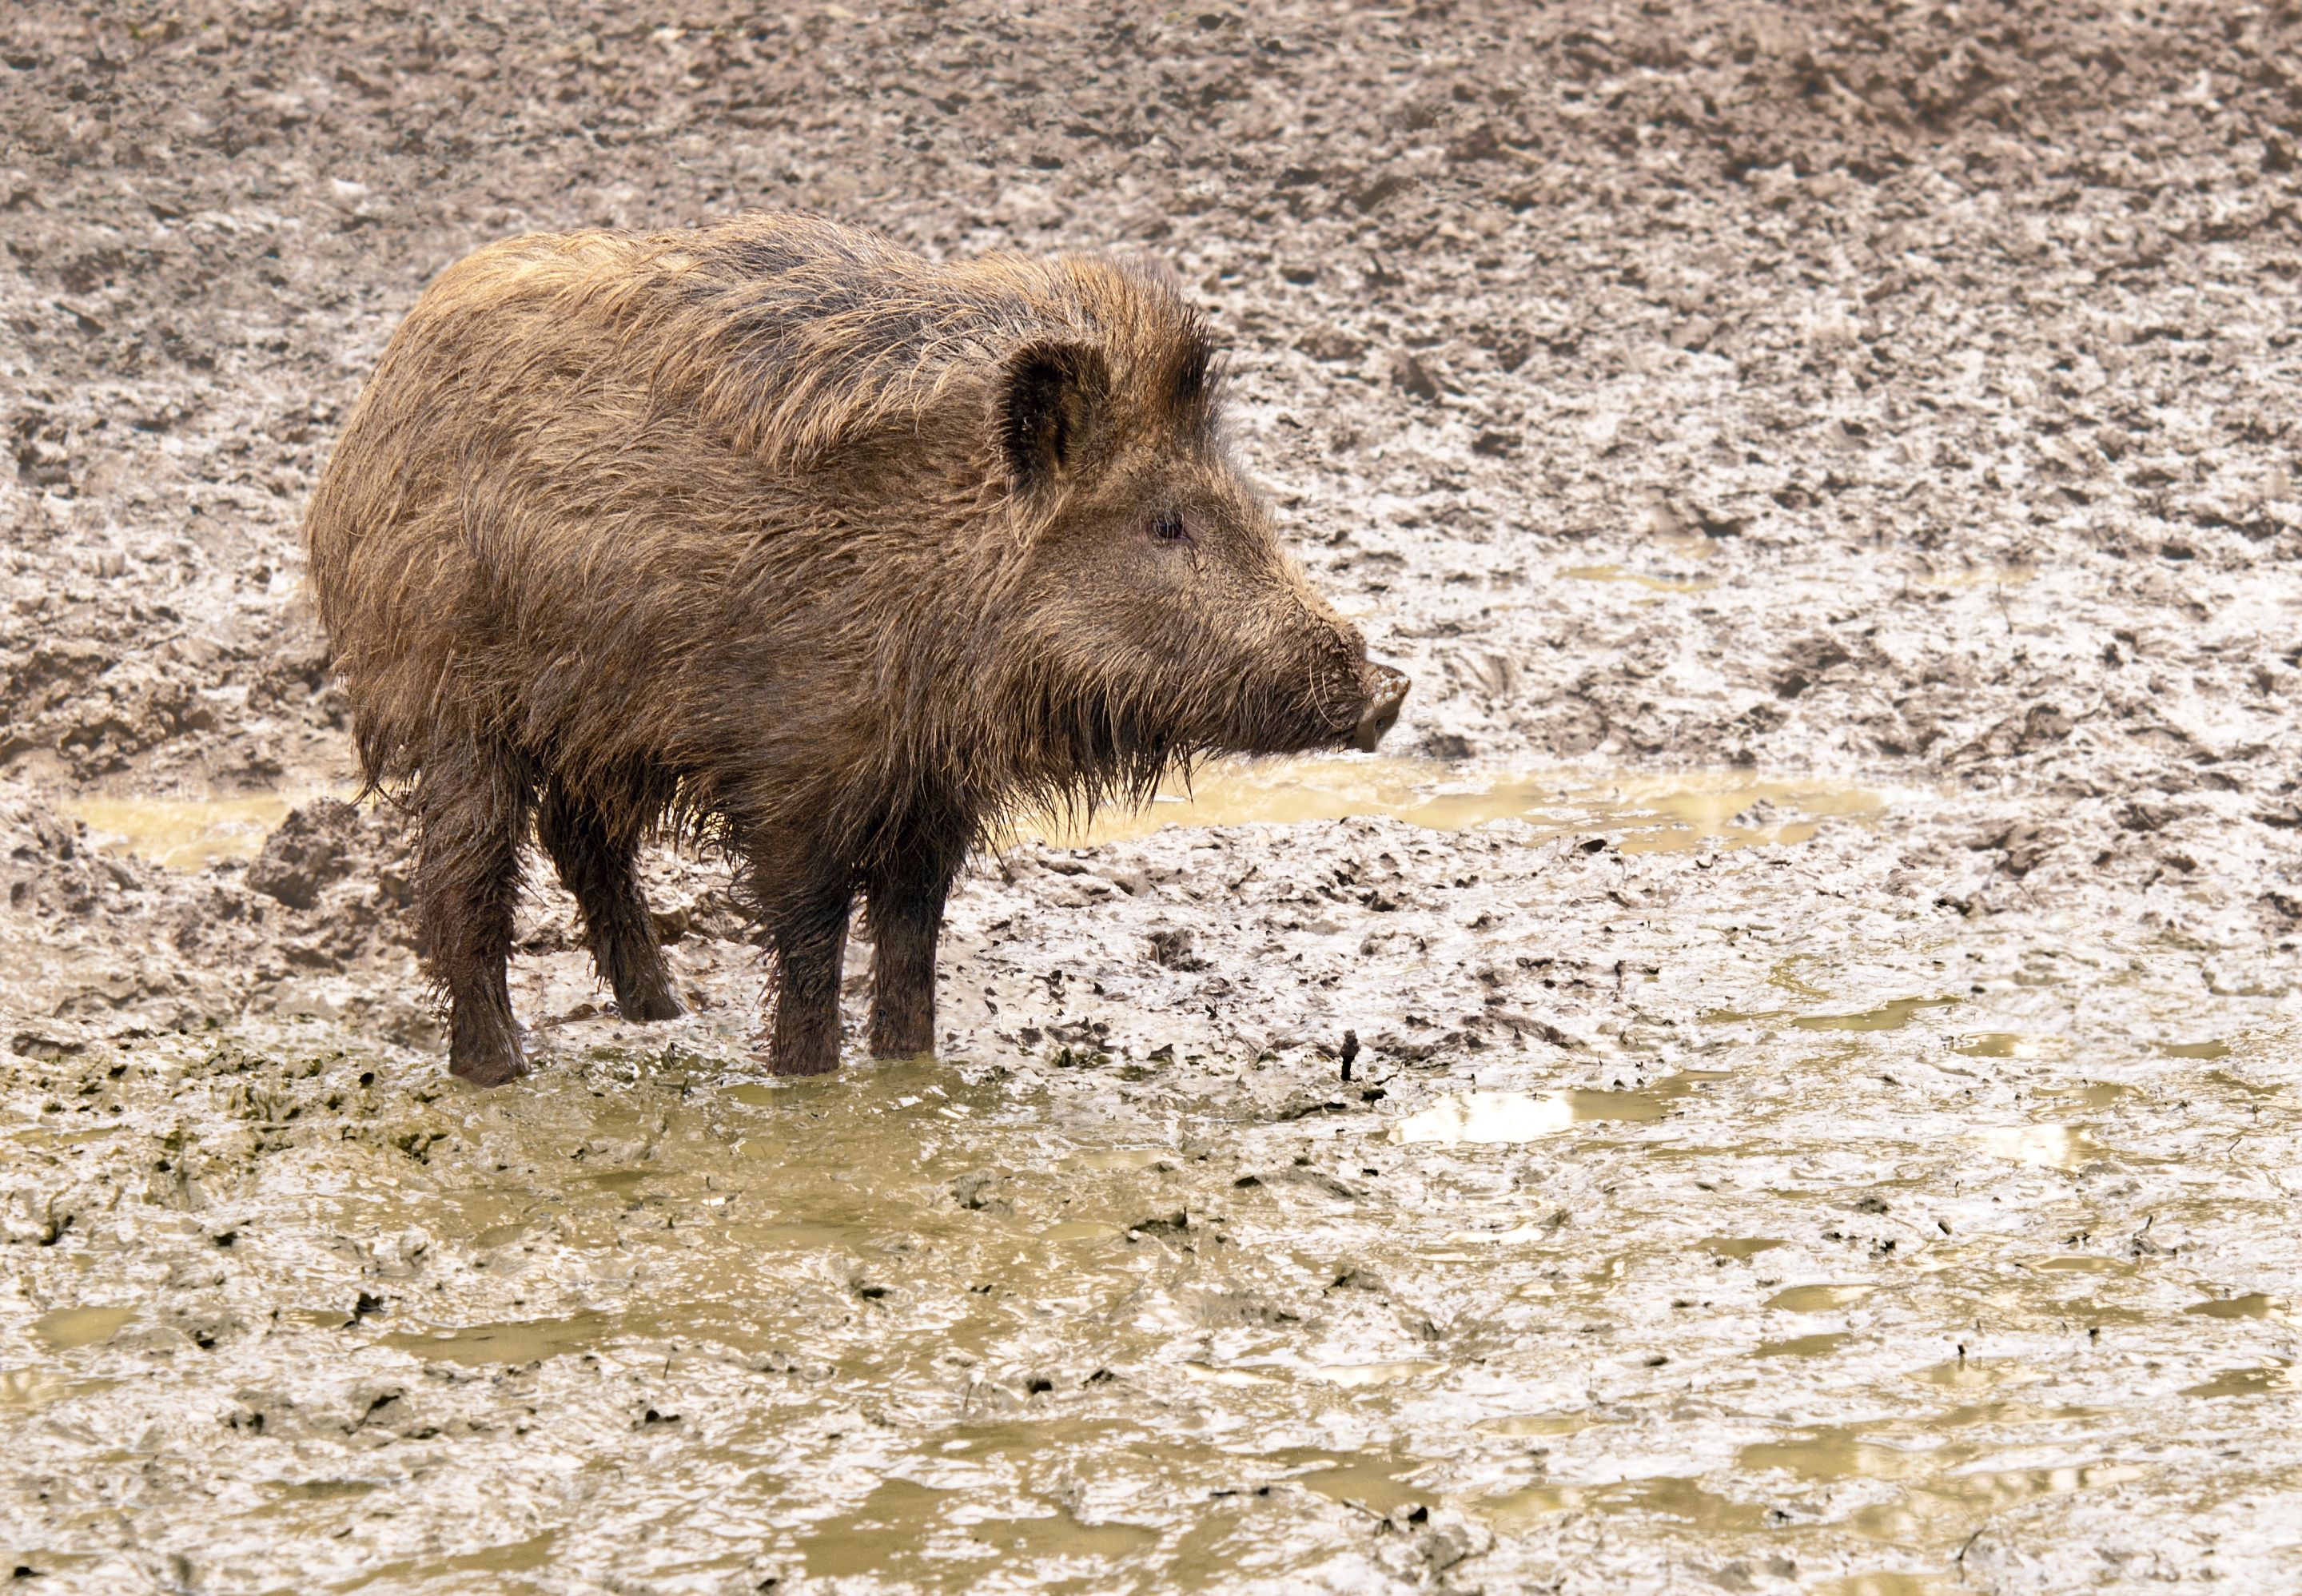 File:A young wild boar in his environment.jpg - Wikimedia Commons